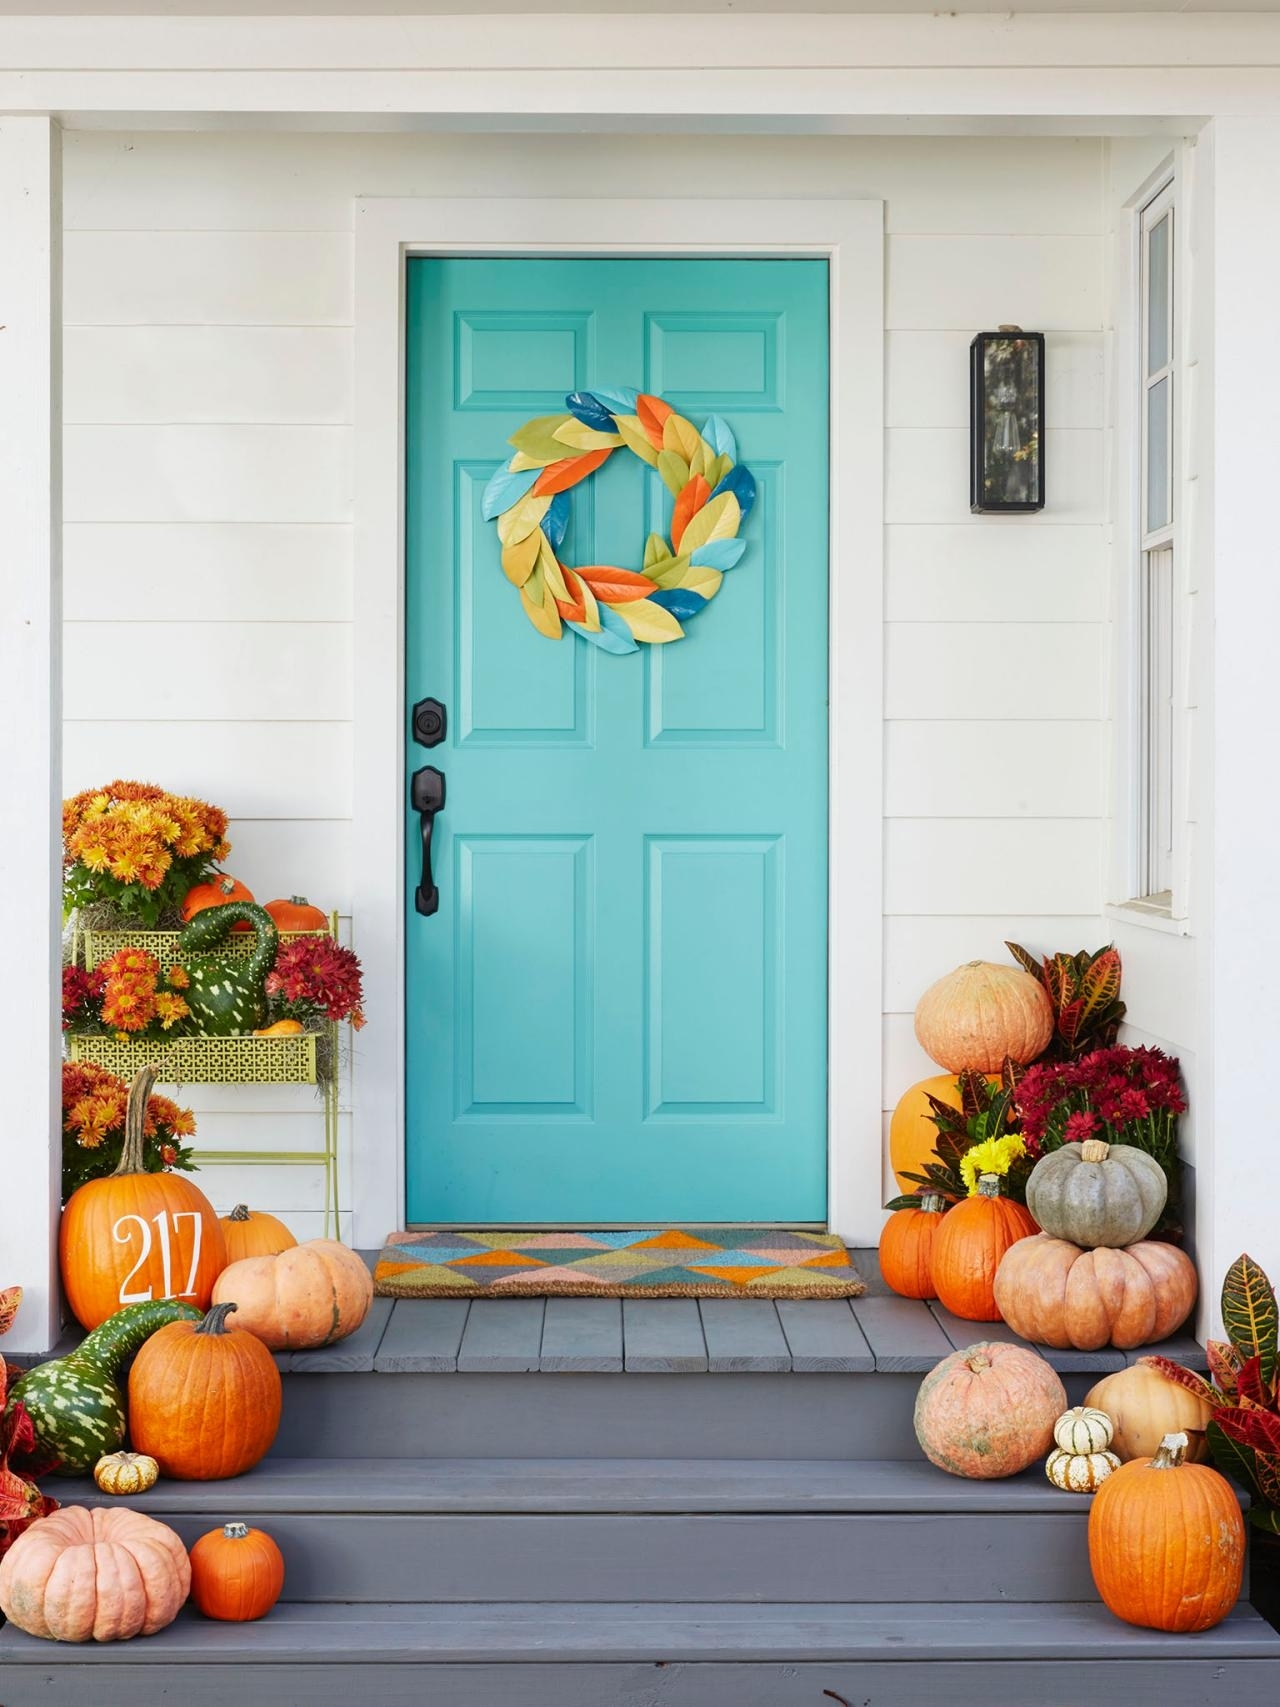 10 Famous Southern Living Fall Decorating Ideas %name 2020